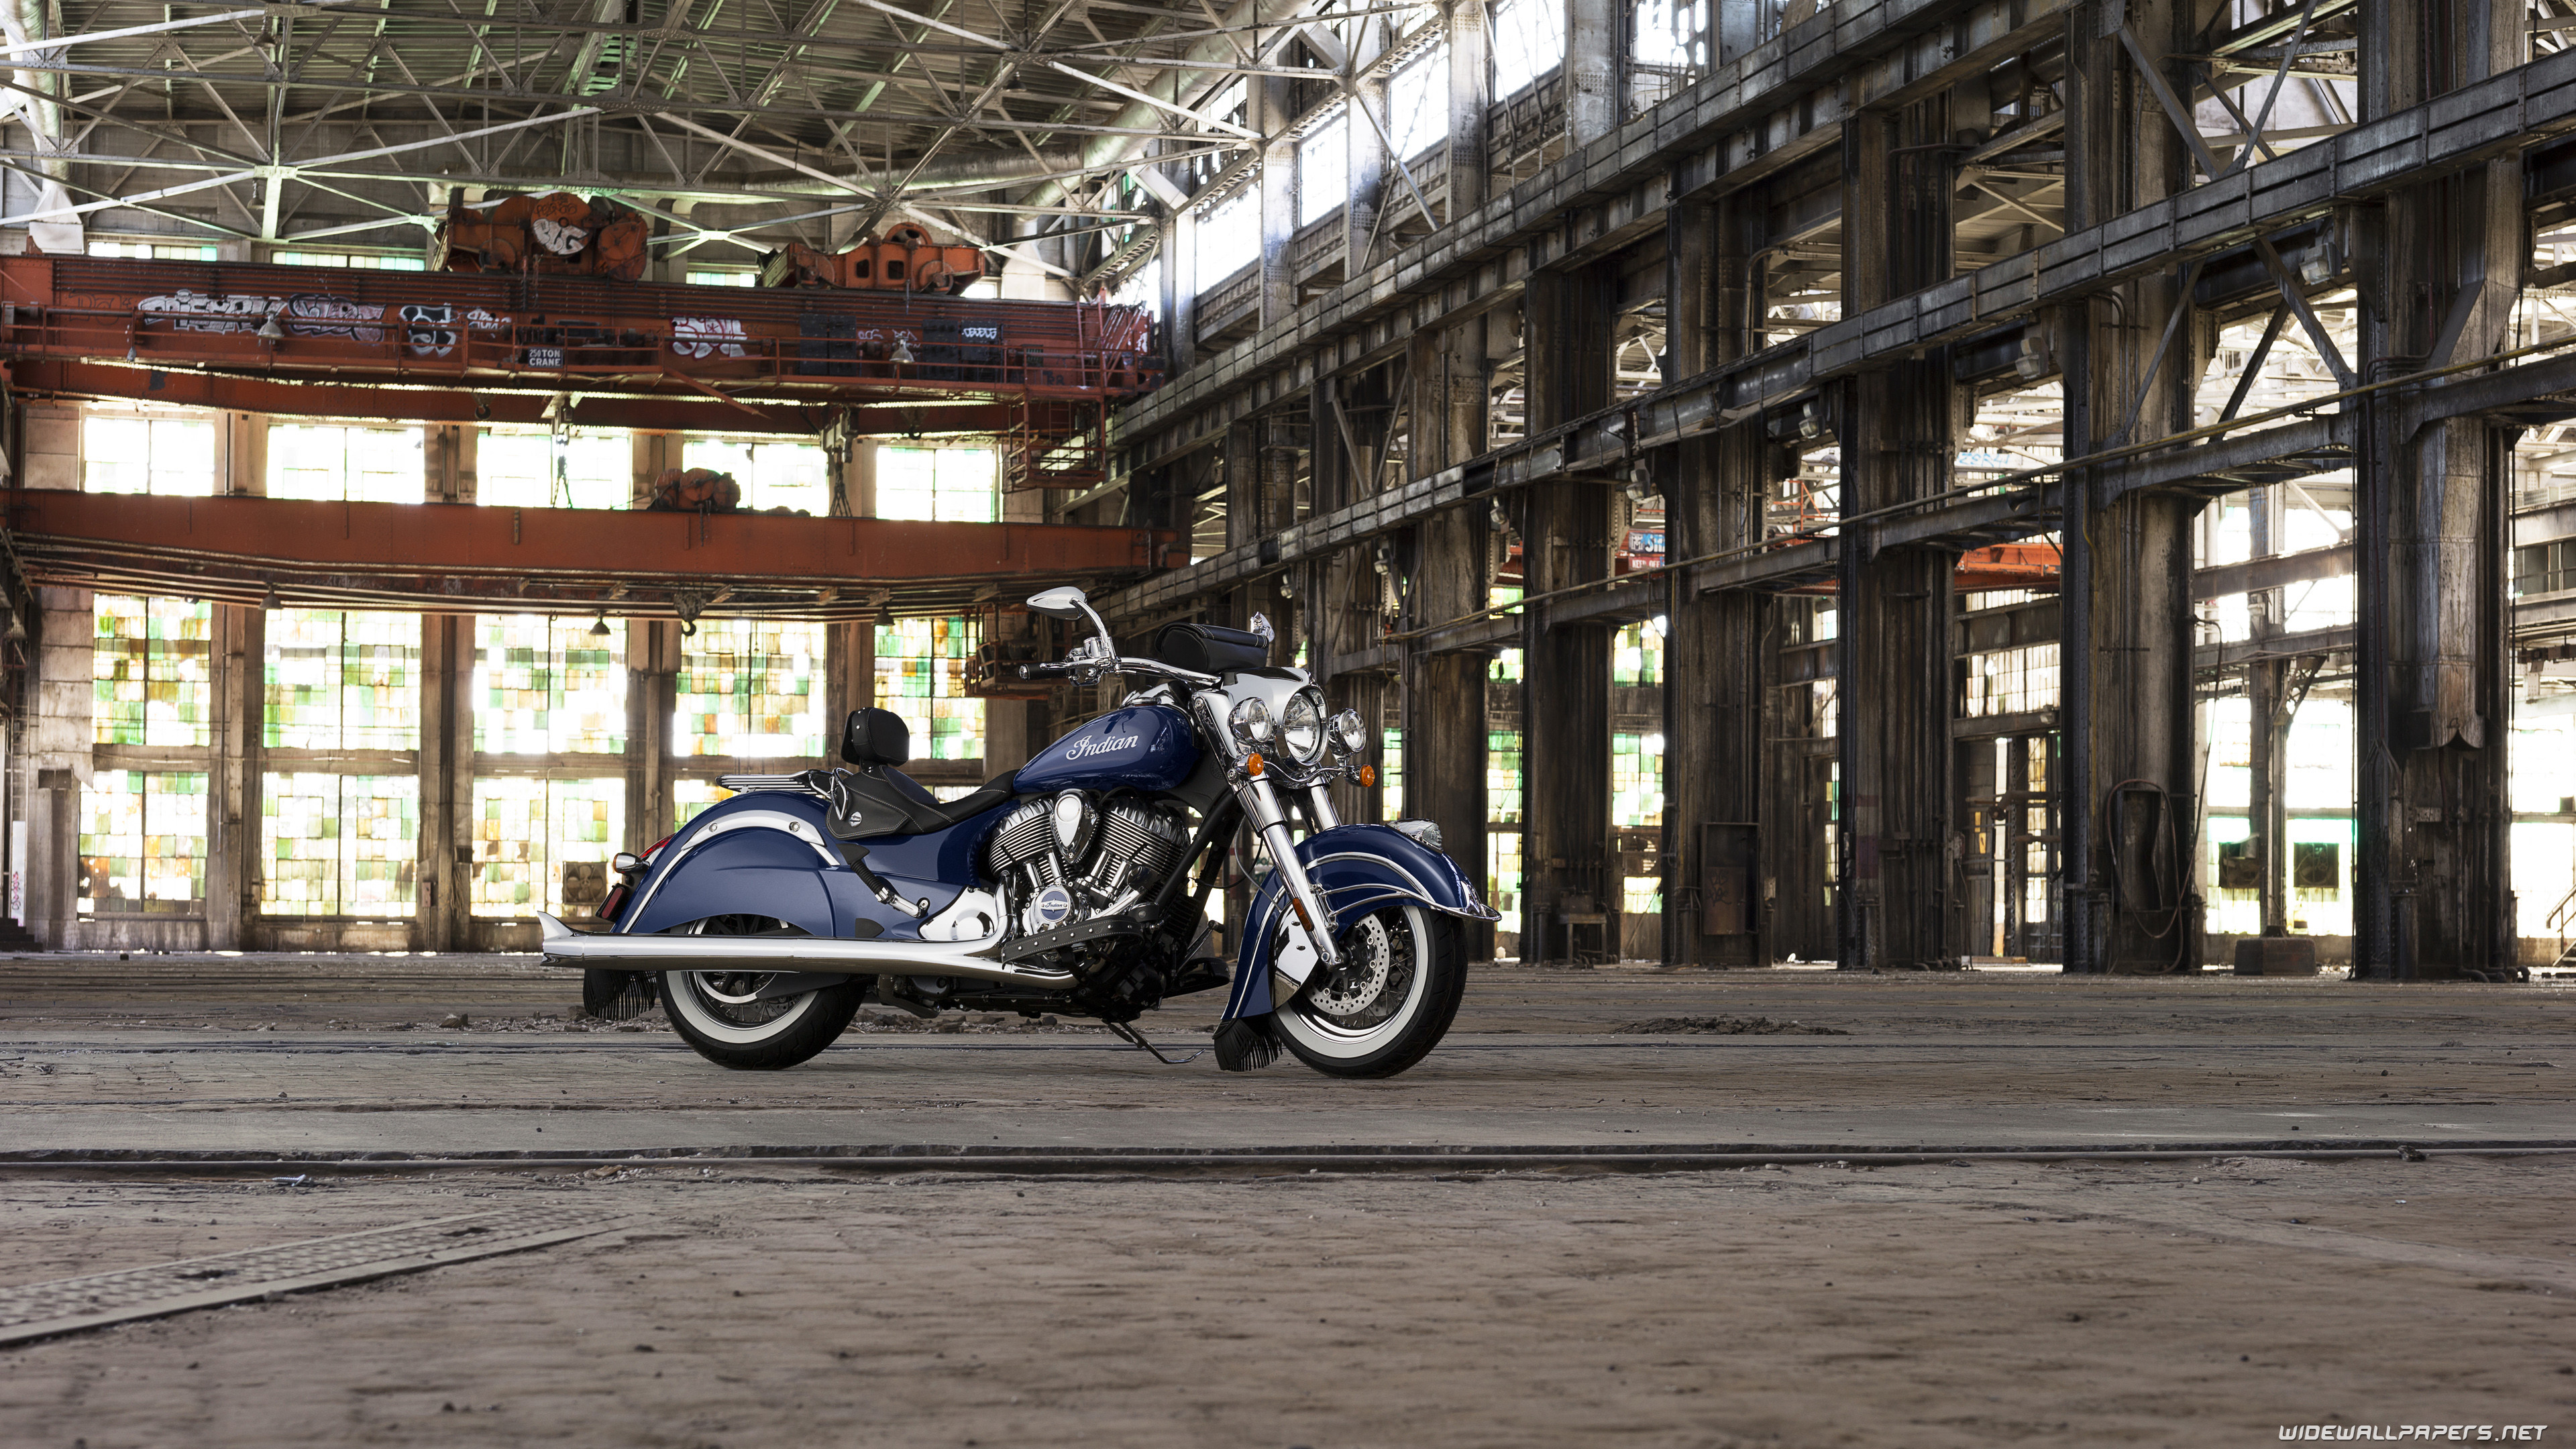 Res: 3840x2160, Indian Chief Classic motorcycle wallpapers ...